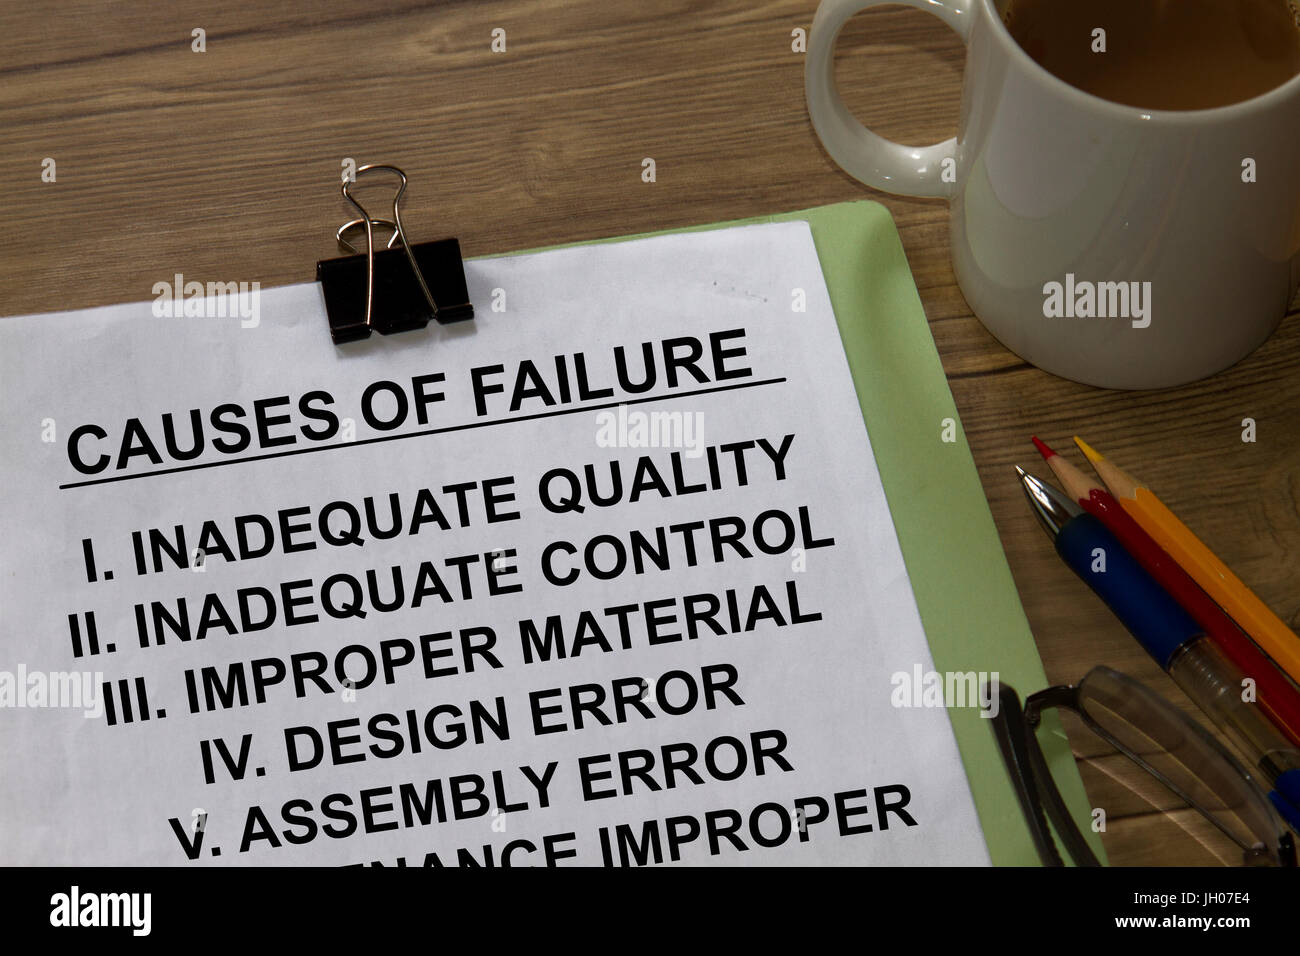 Causes of failure in a tear sheet presentation. Stock Photo